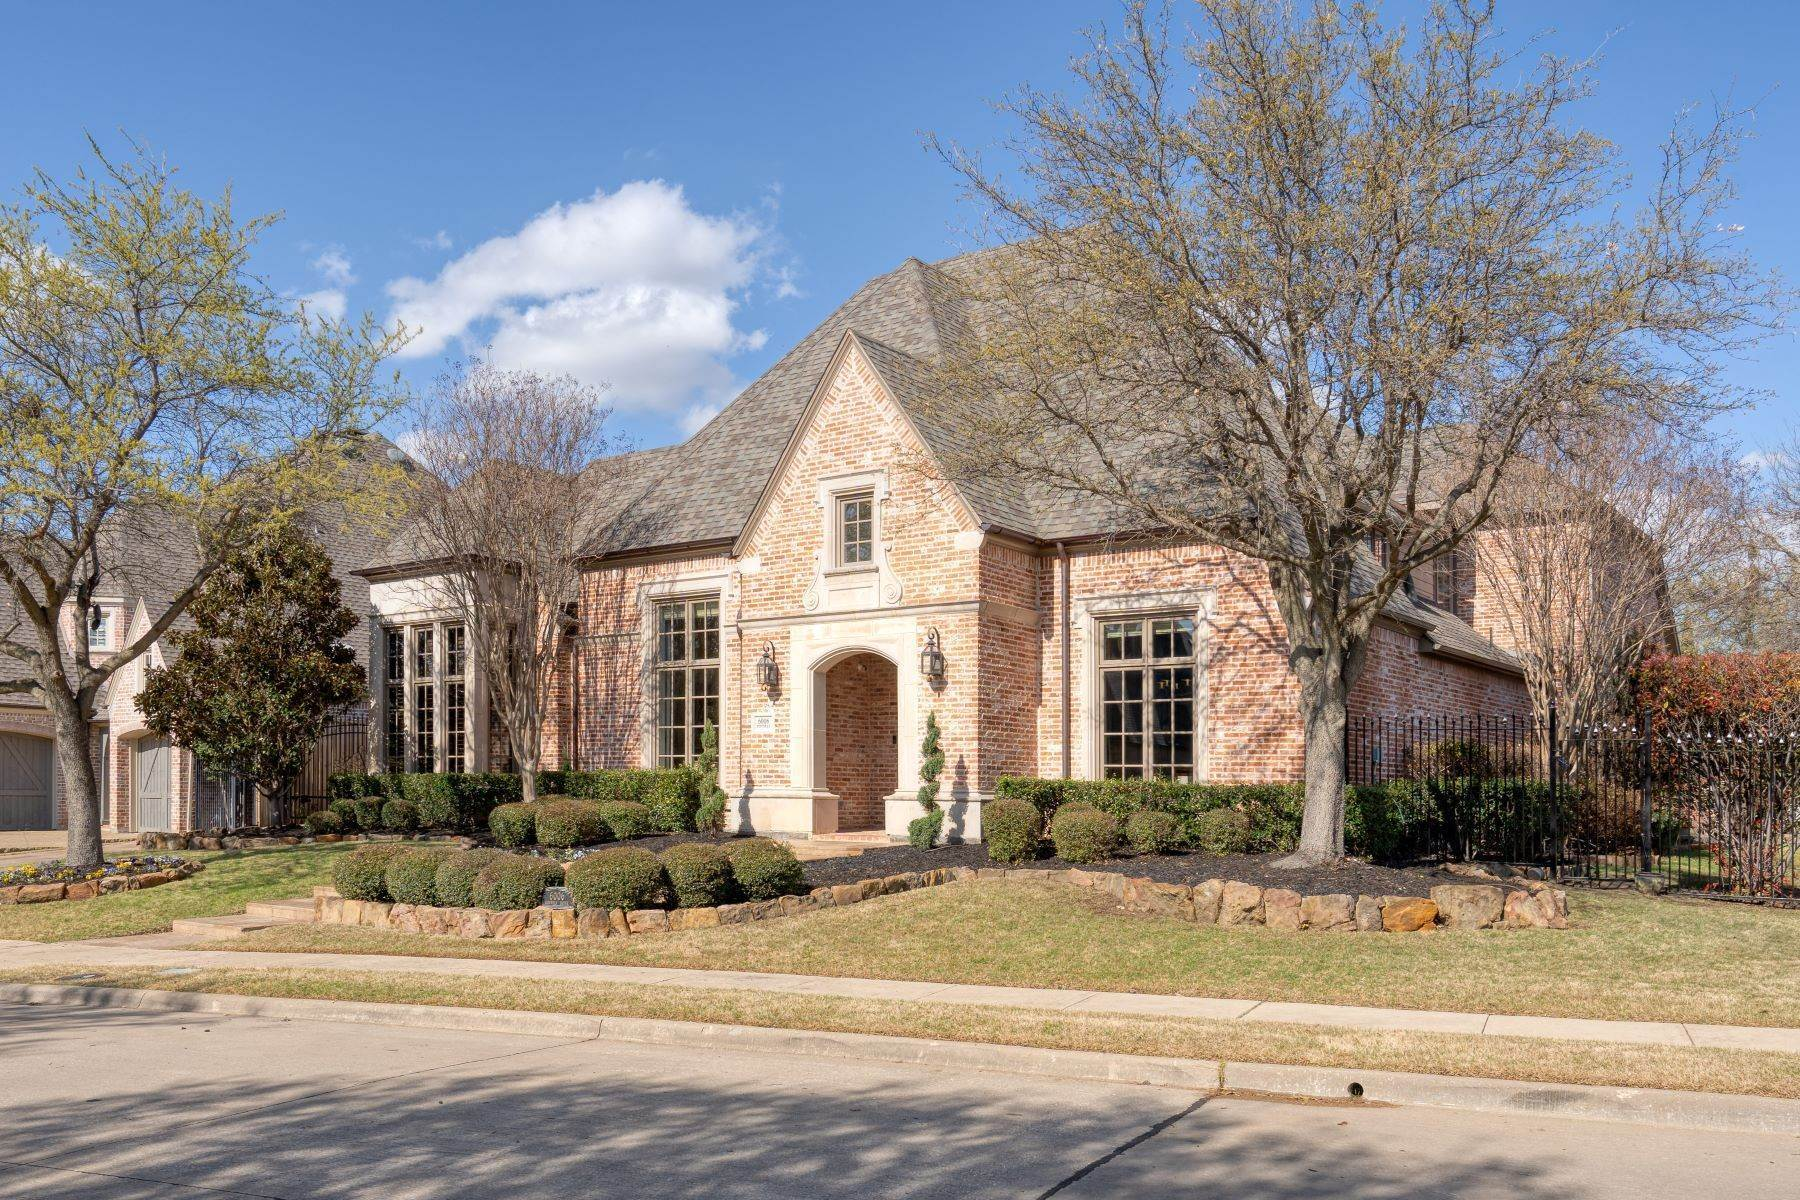 Single Family Homes for Sale at 6006 Connely Drive, Frisco, TX, 75034 6006 Connely Drive Frisco, Texas 75034 United States